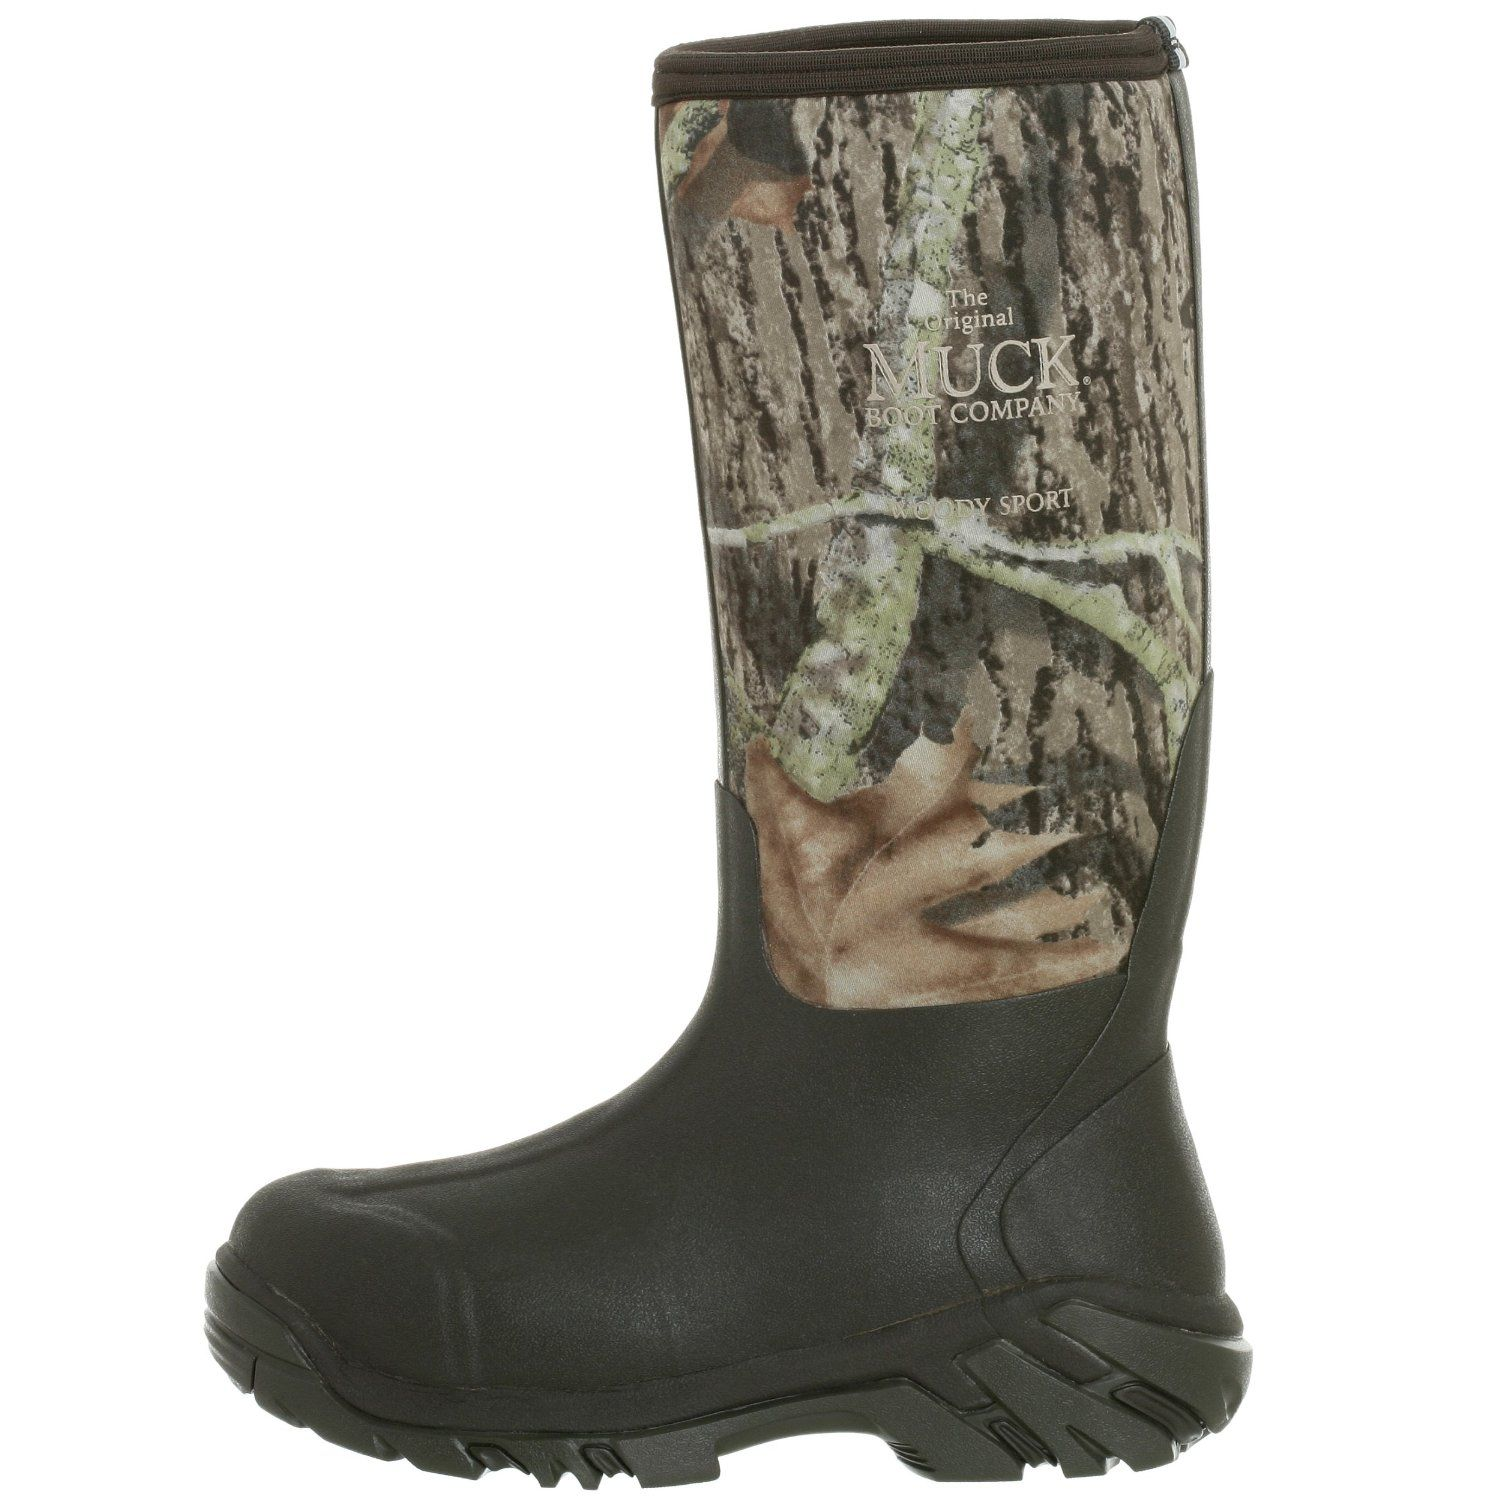 For AllTerrain boot needs, Muck Boot offers the Woody